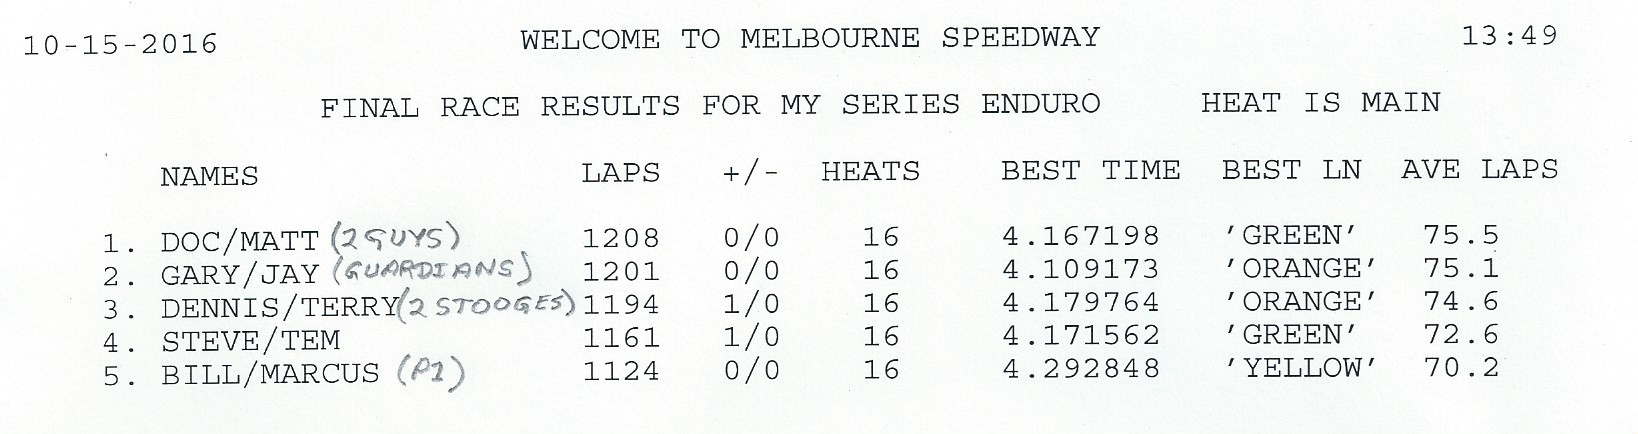 MS Enduro race results Melbourne 10-15-2016.jpg